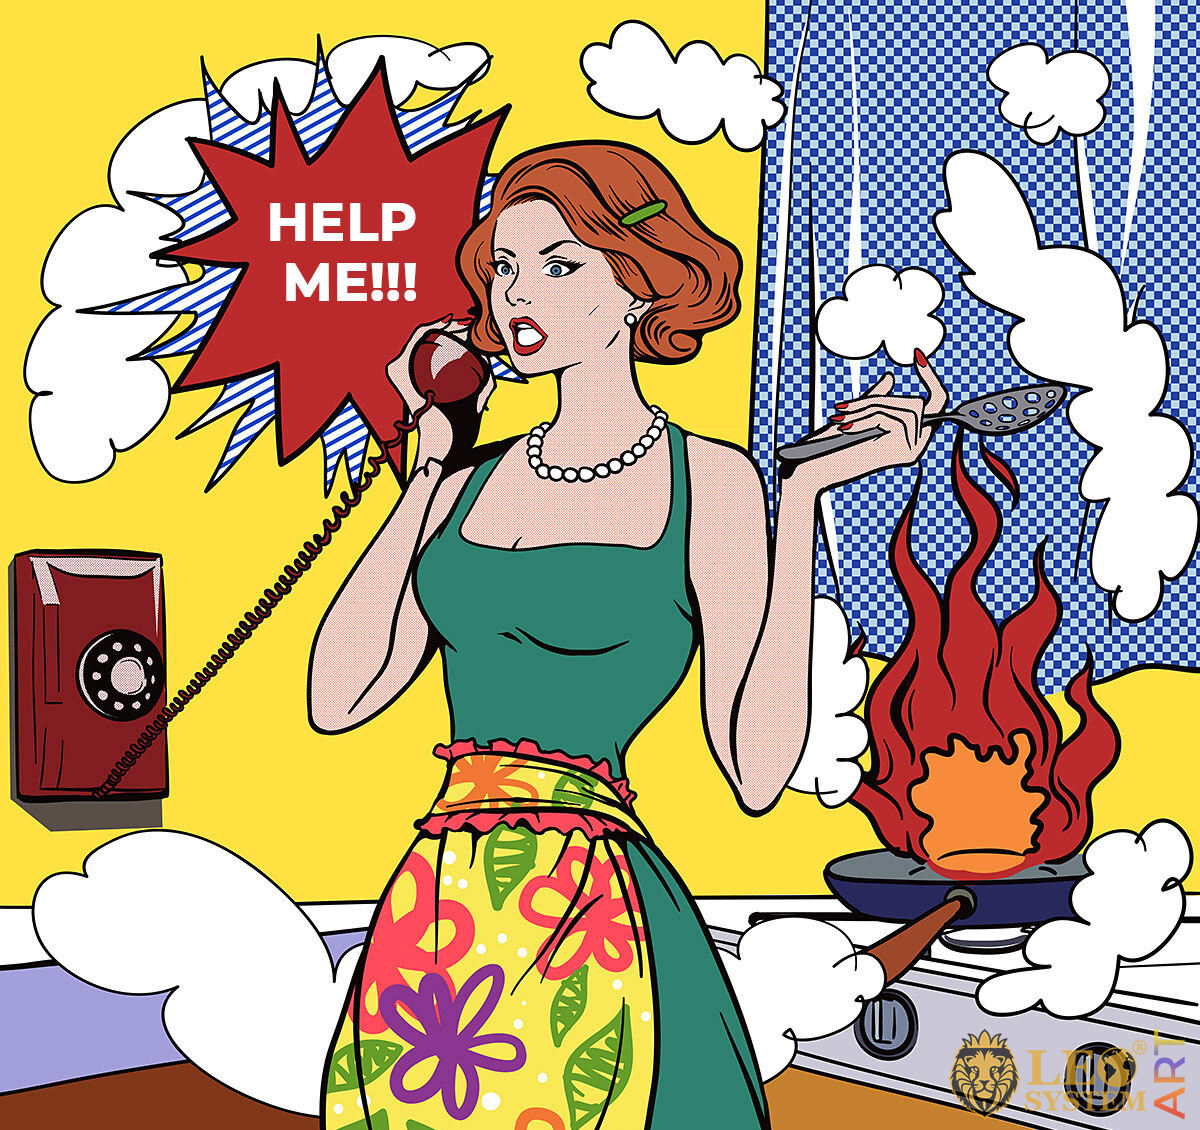 Picture of a woman talking on the phone in the kitchen asking for help